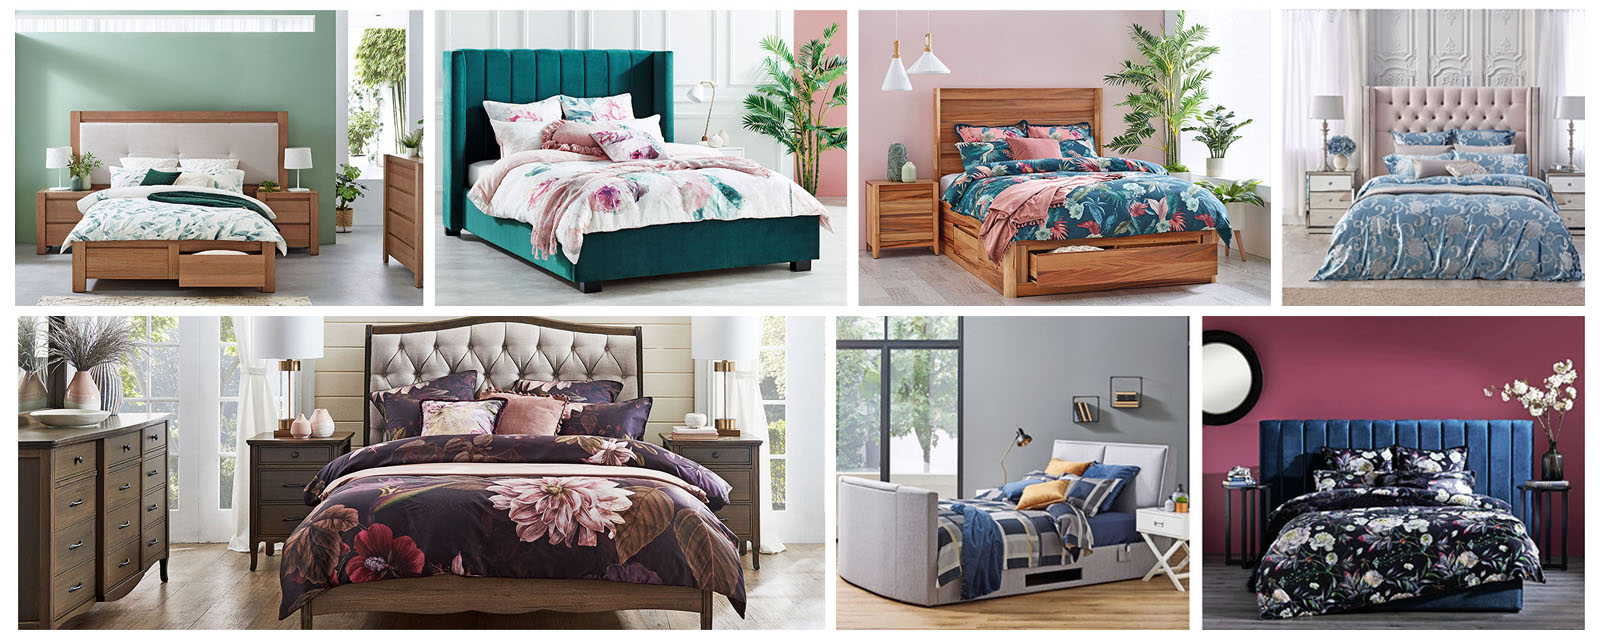 A selection of Harvey Norman's on-trend winter bedding options.